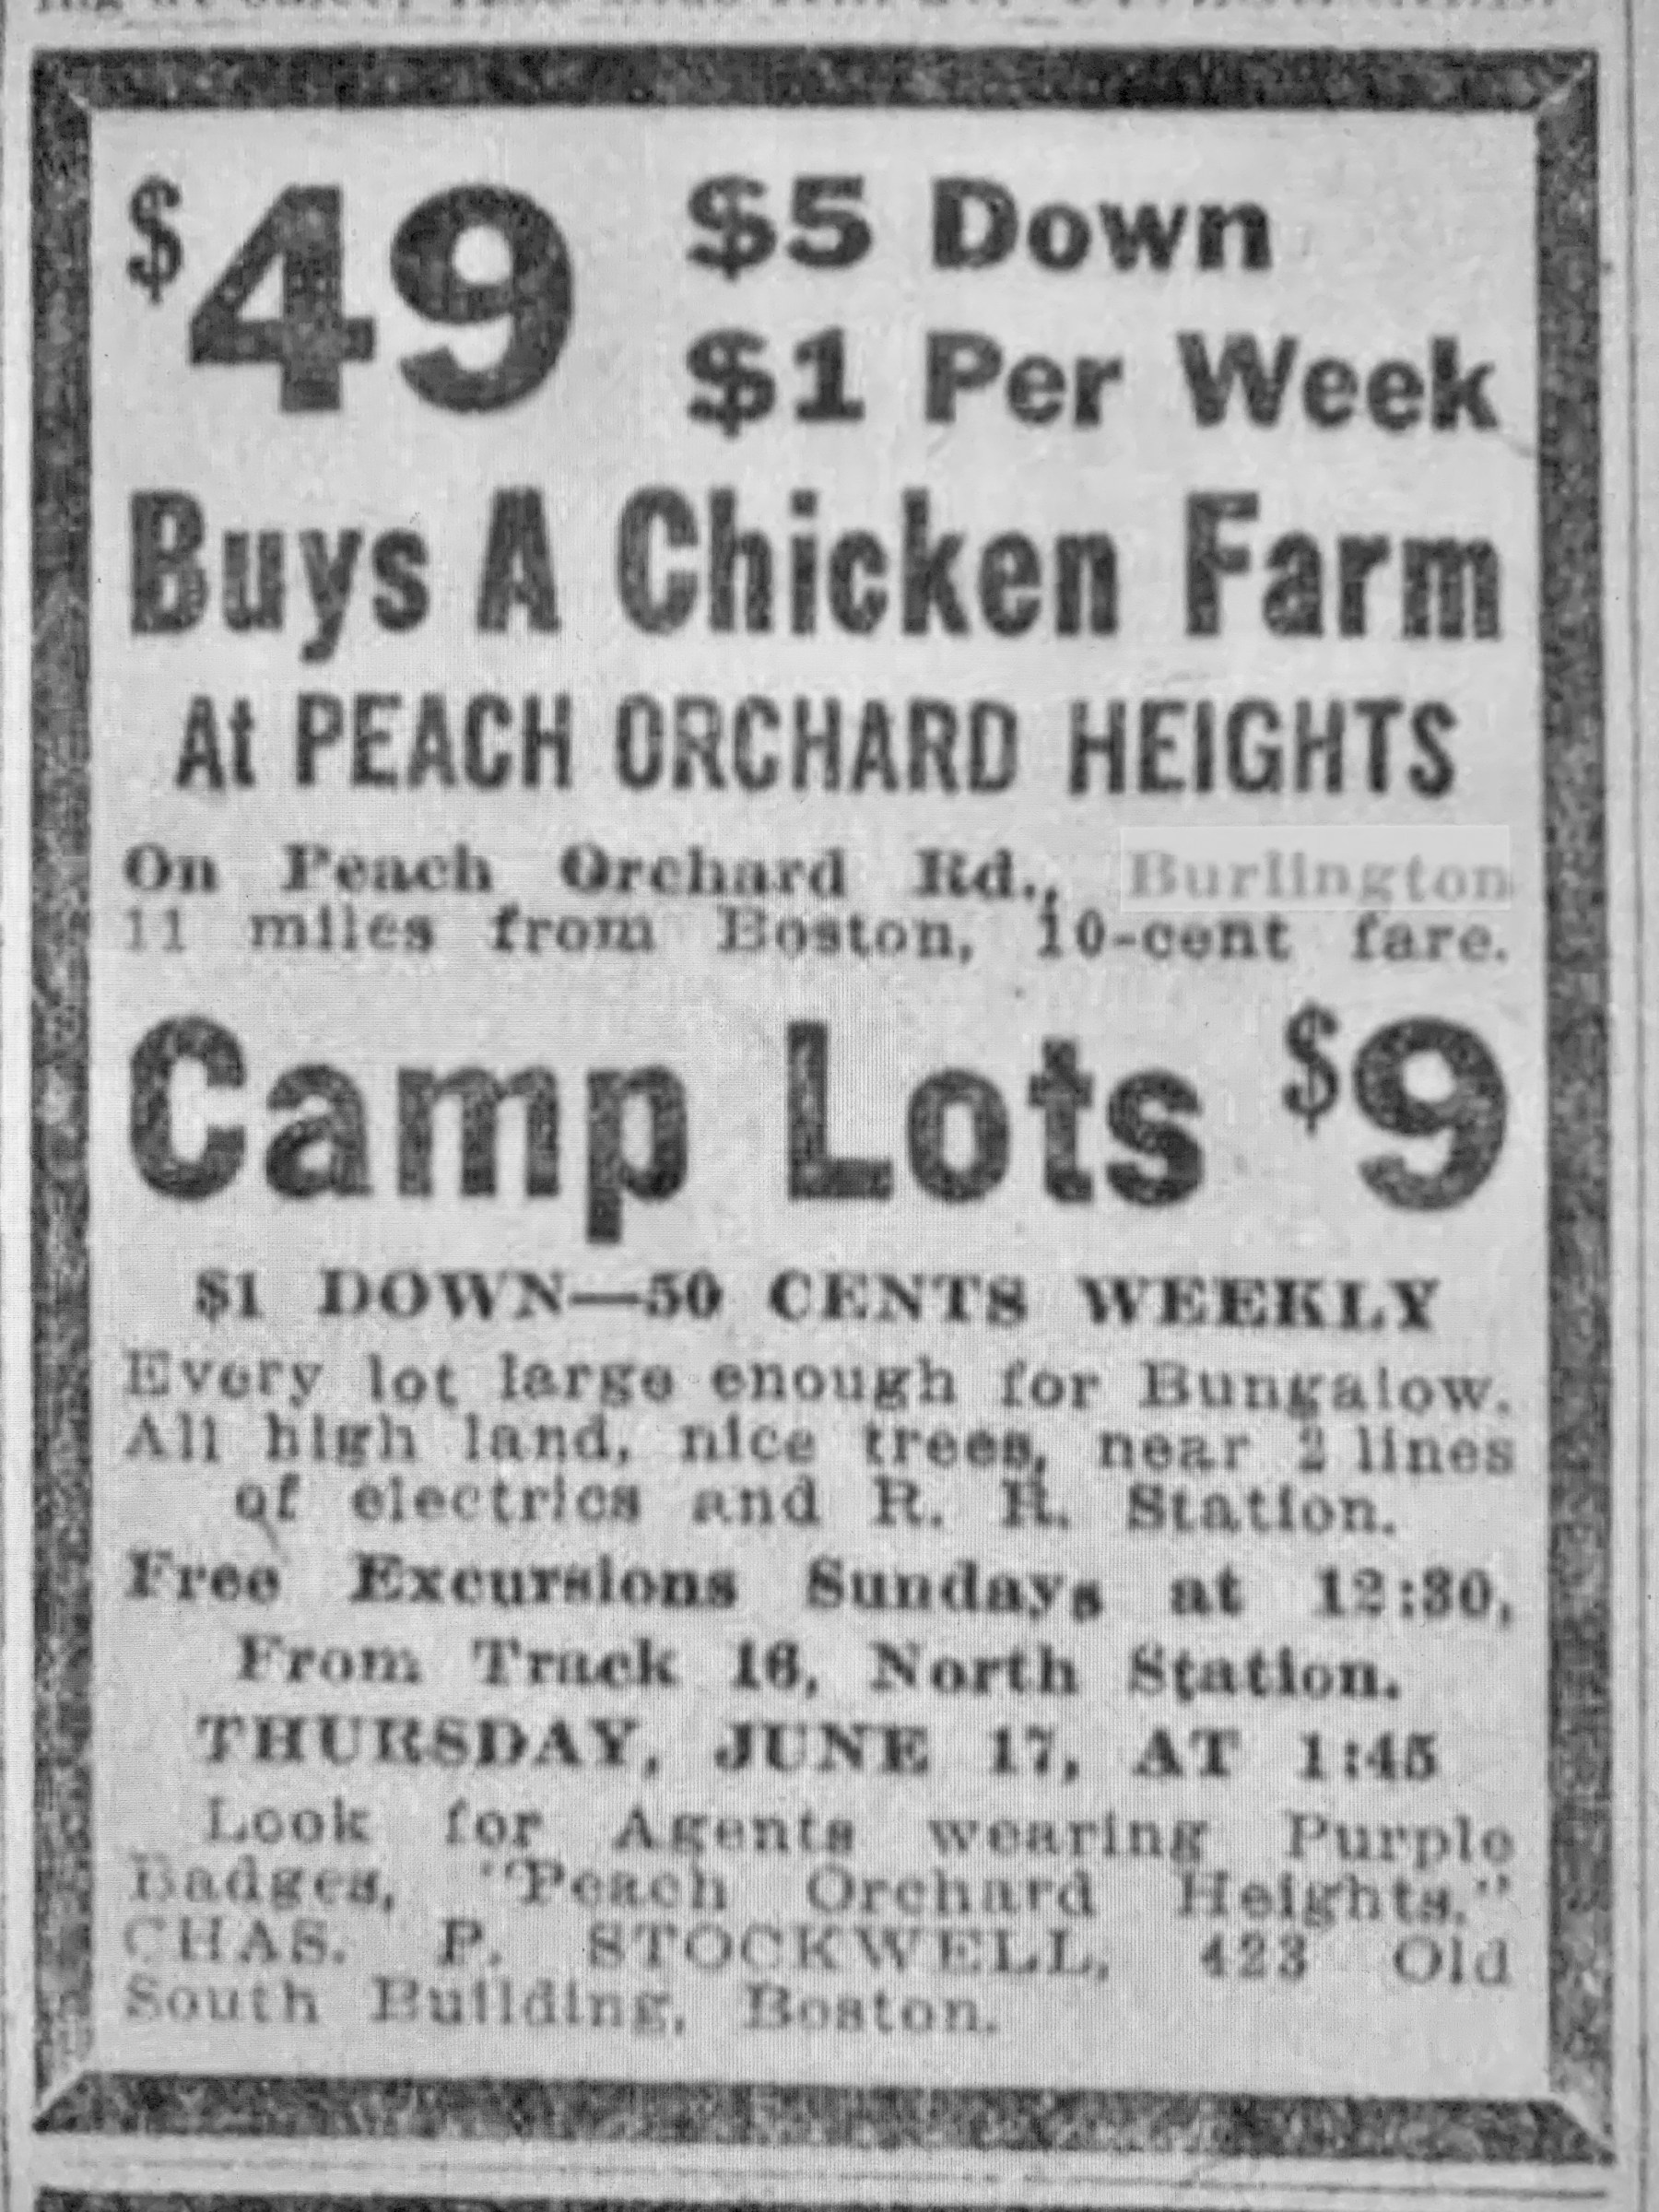 Peach Orchard Heights ad 1916 Burlington MA